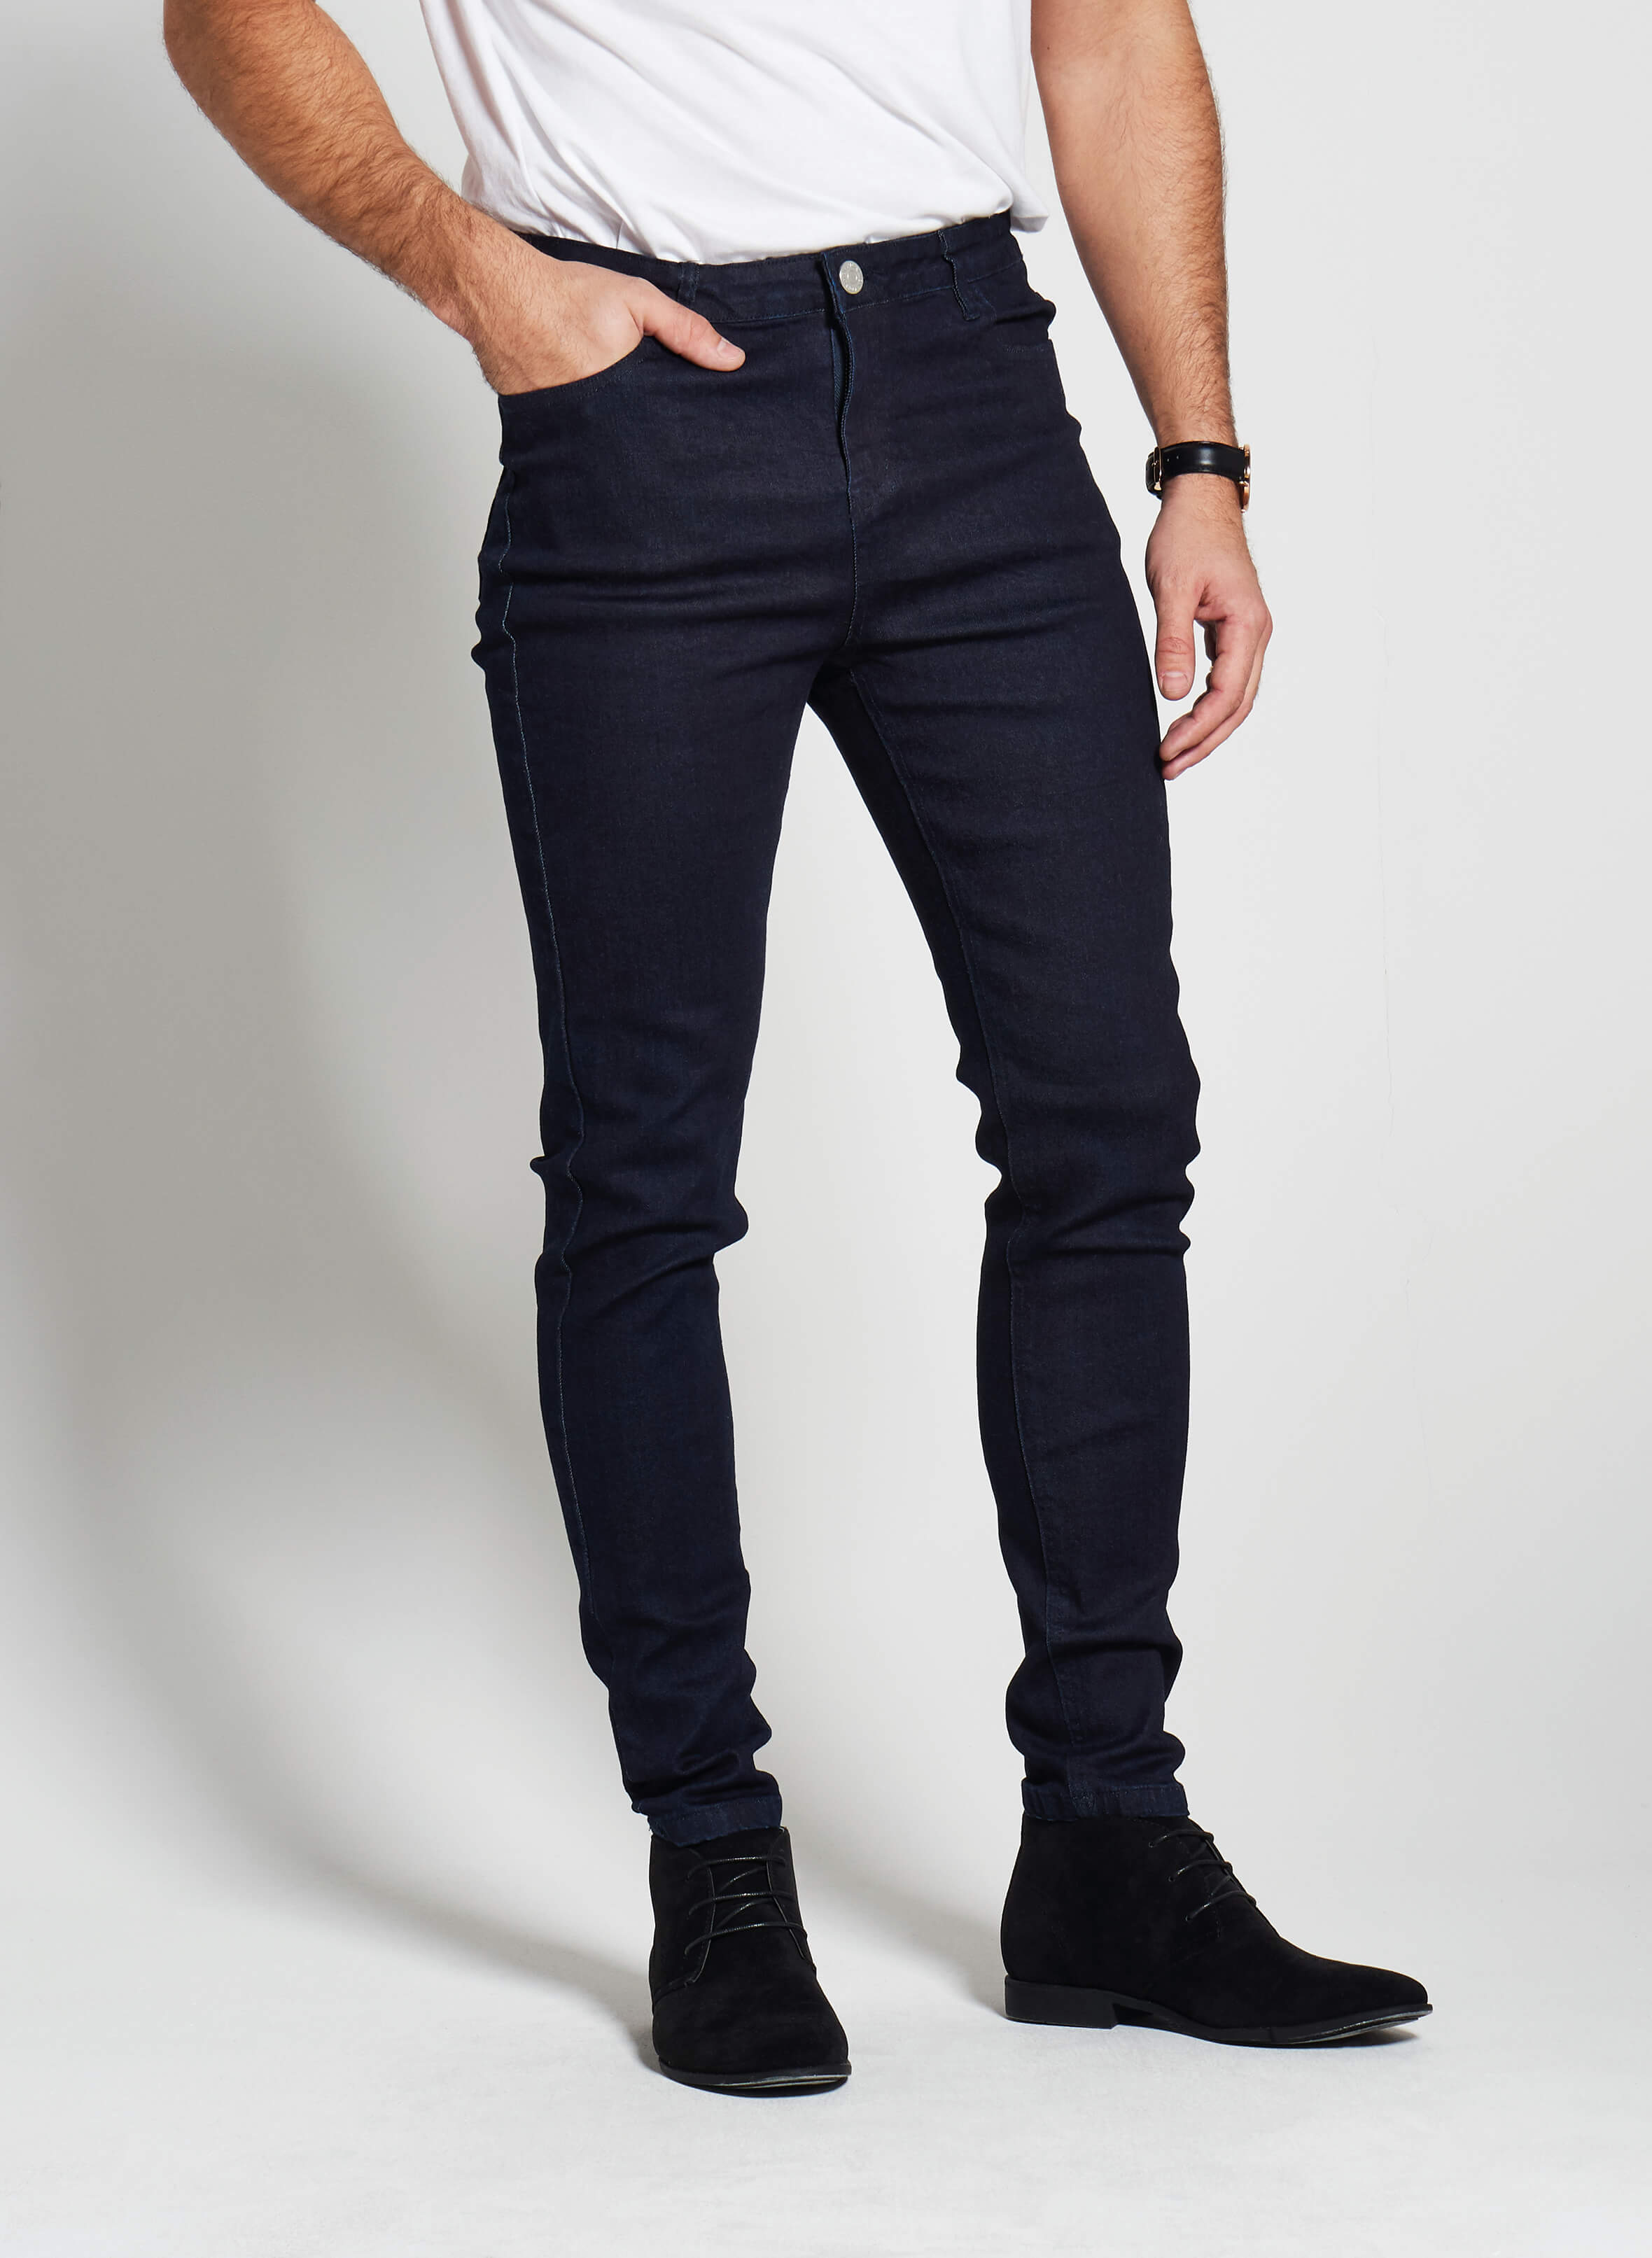 Denim Only® Slim Fit Jeans - Dark Navy - Slim Fit